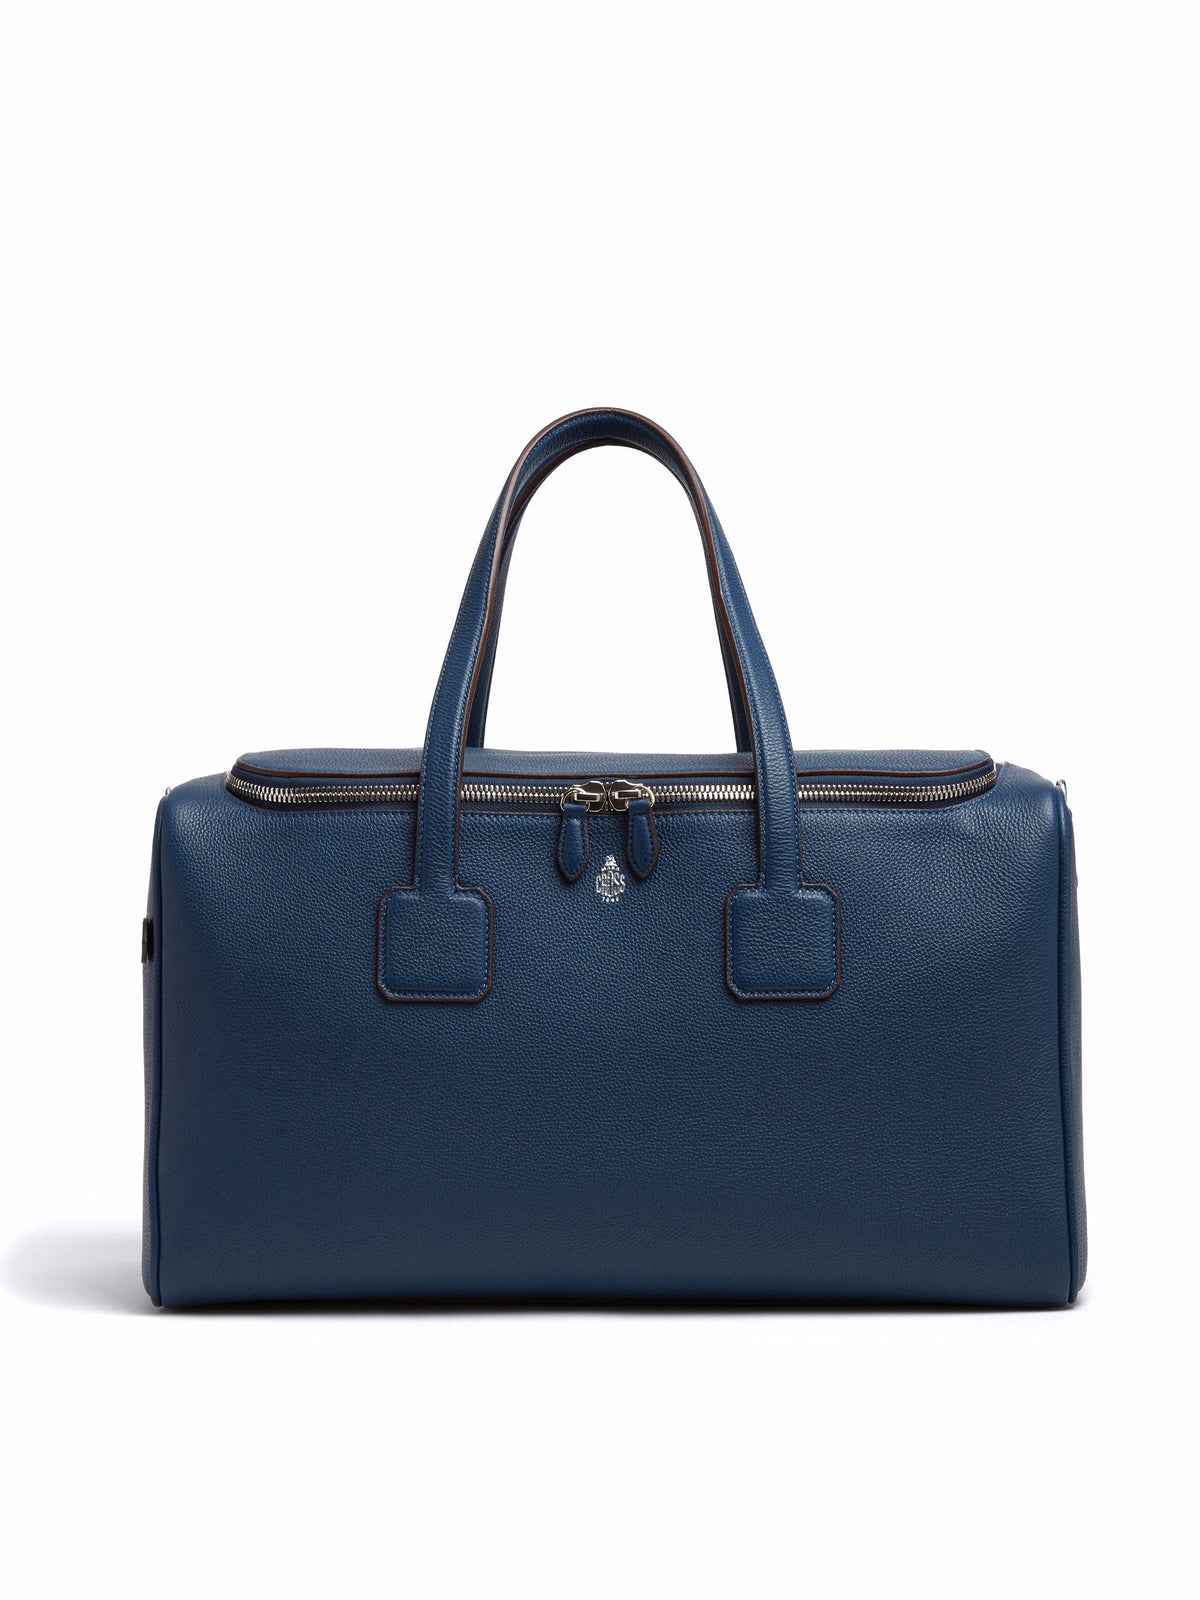 Mark Cross Henry Leather Sports Duffle Bag Tumbled Grain Navy Front